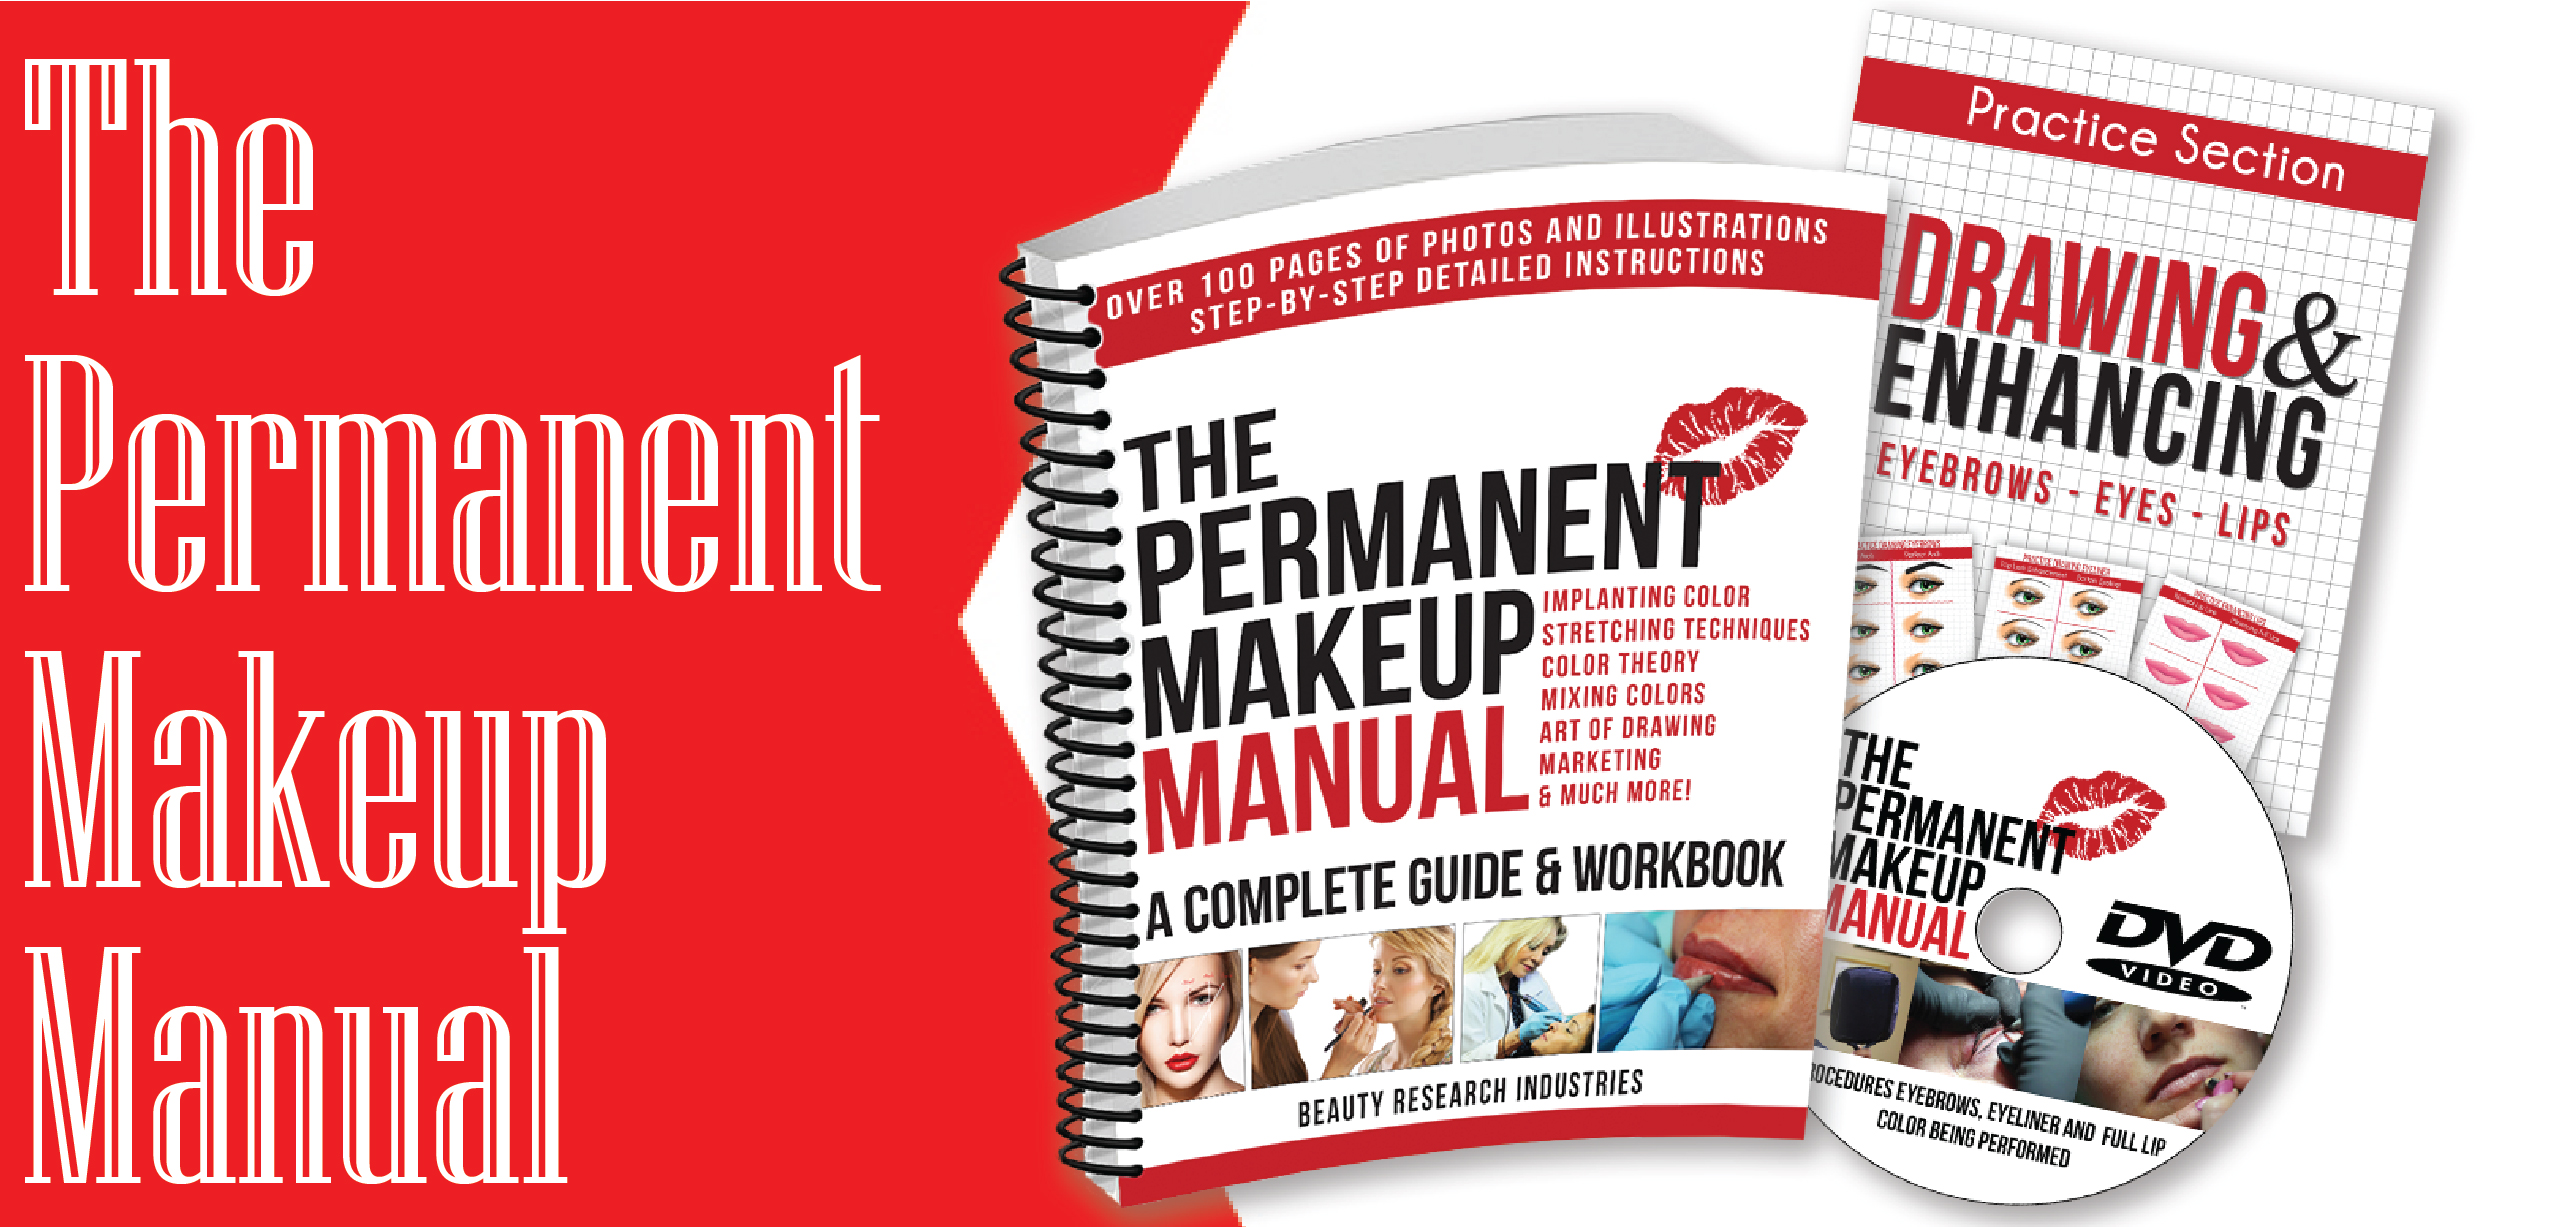 wholesale tattoo cosmetics, cosmetic tattoo supplies, the permanent makeup manual